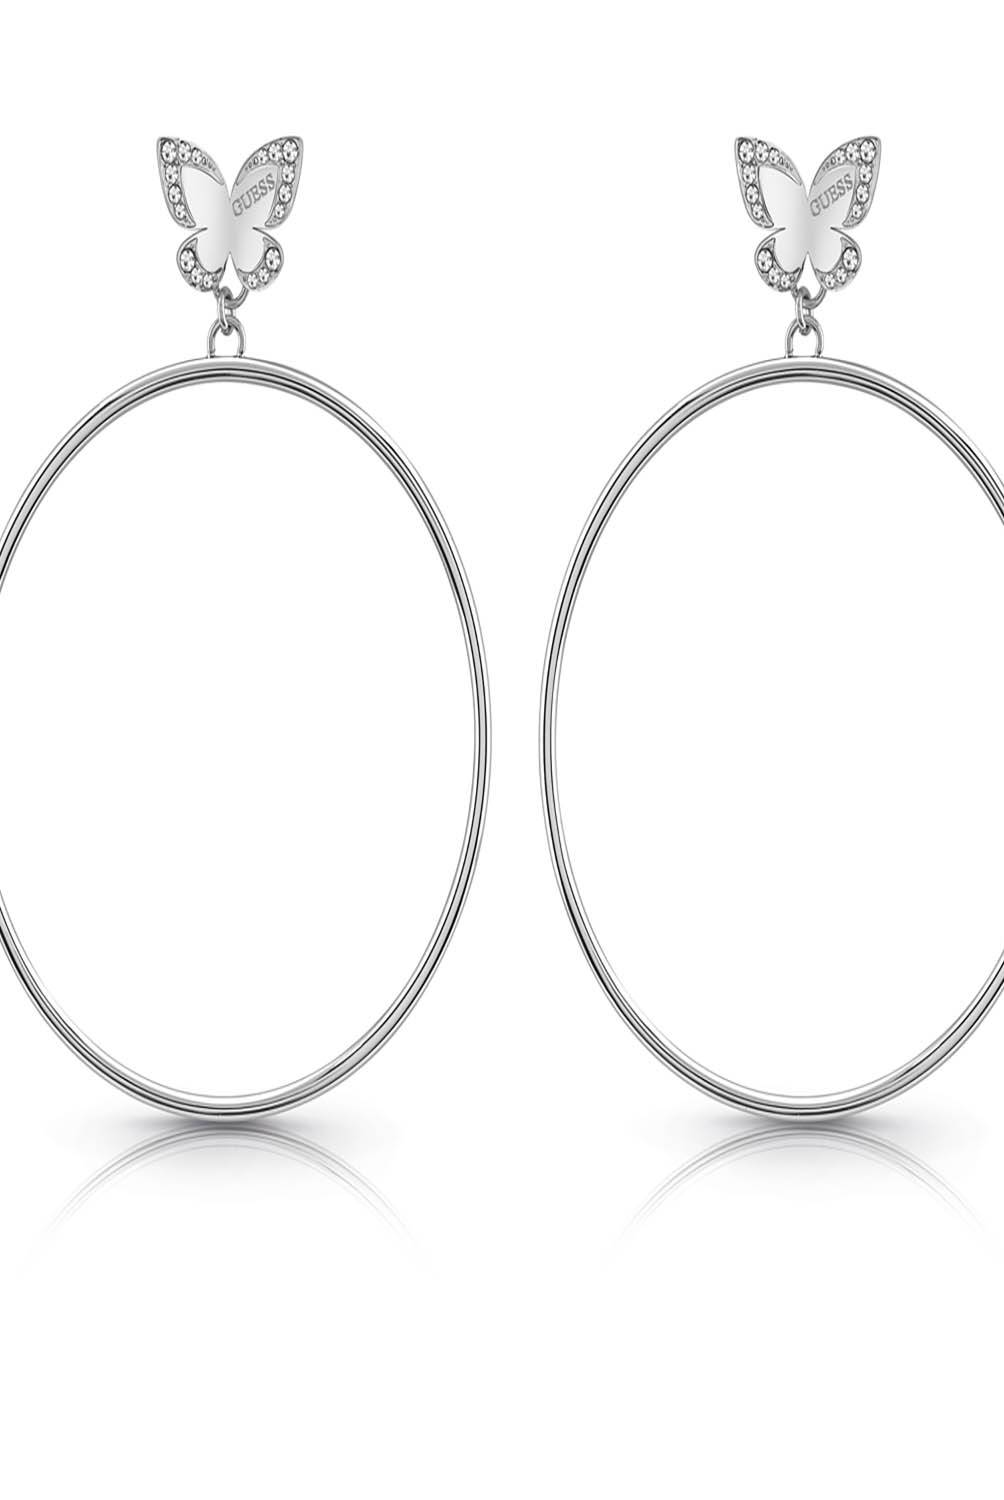 Guess - Aretes Guess Love Butterfly UBE78013